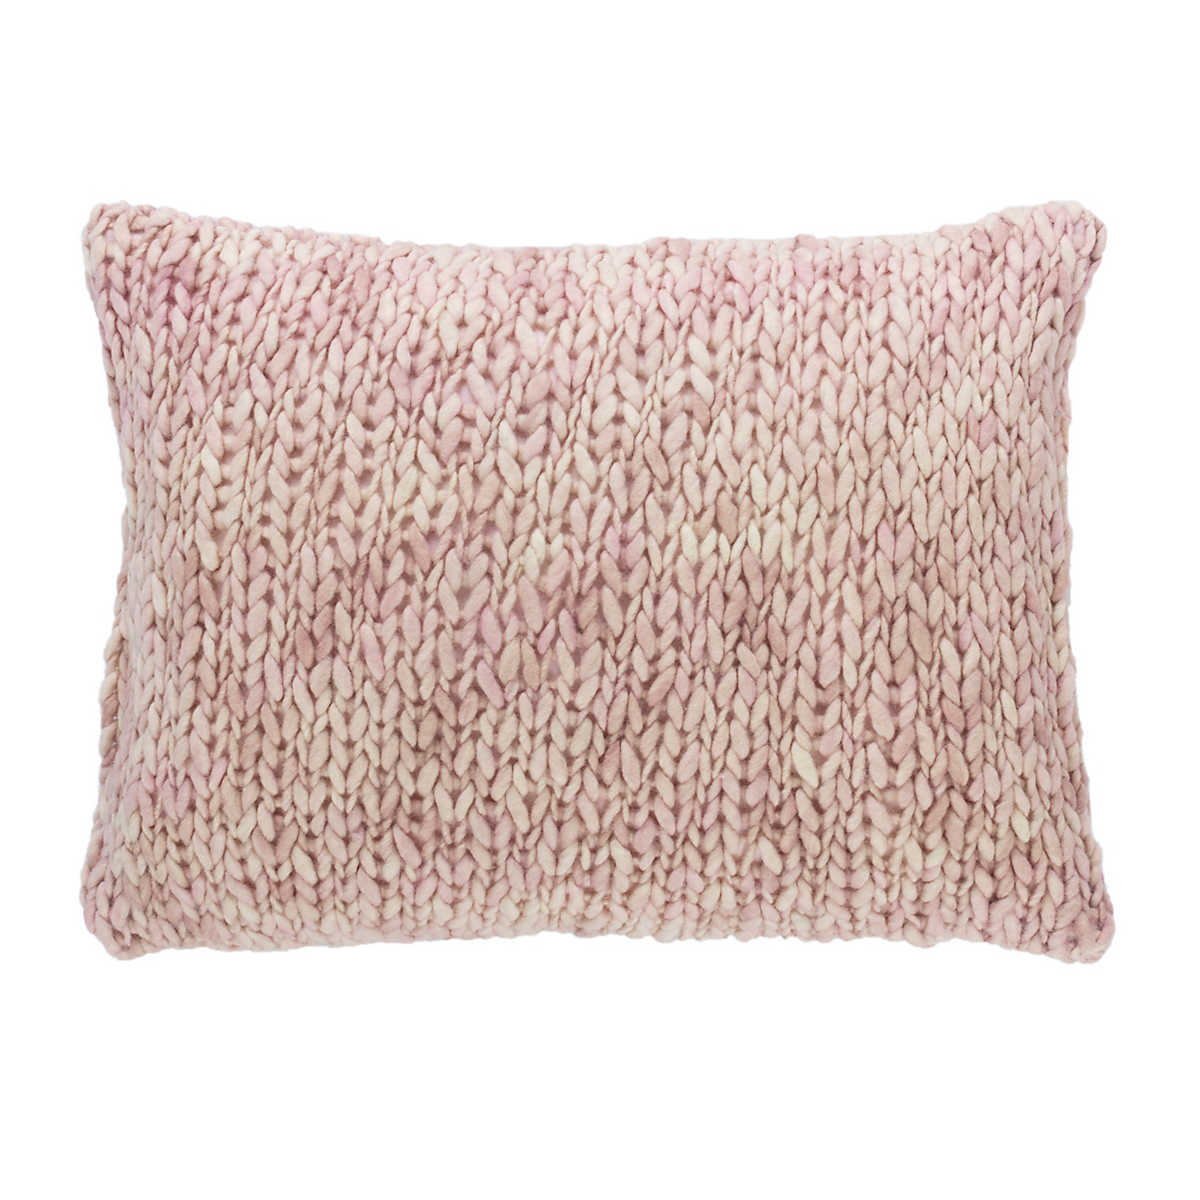 Chunky Knit Pink Decorative Pillow Pine Cone Hill